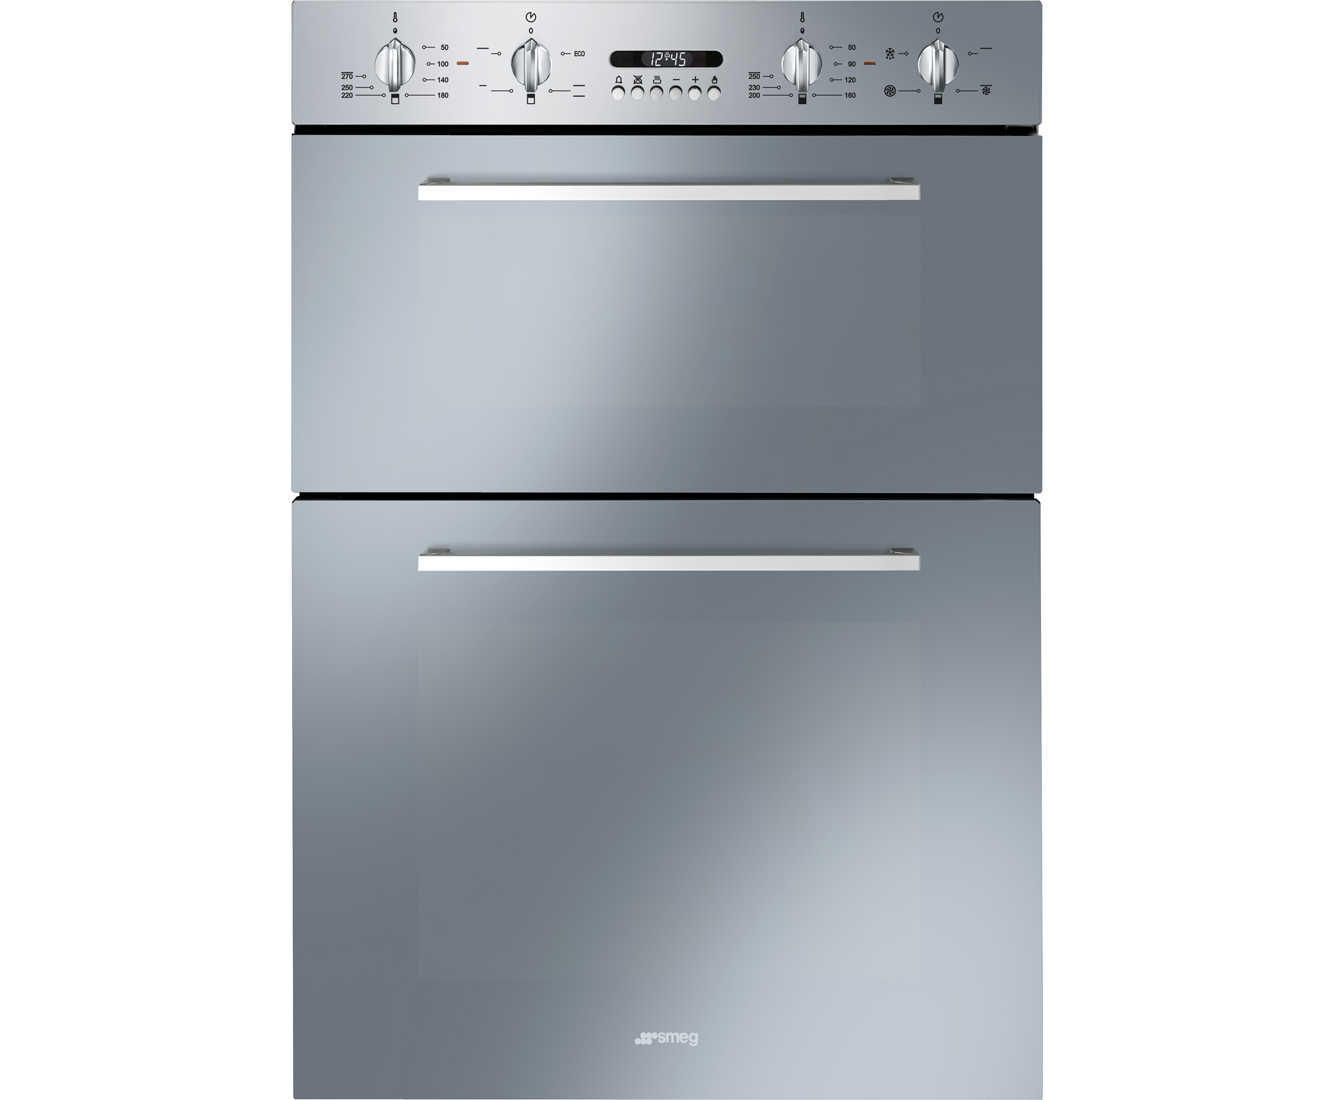 Cucina Economica A Gas Smeg Buy Cheap Smeg Oven Compare Cookers And Ovens Prices For